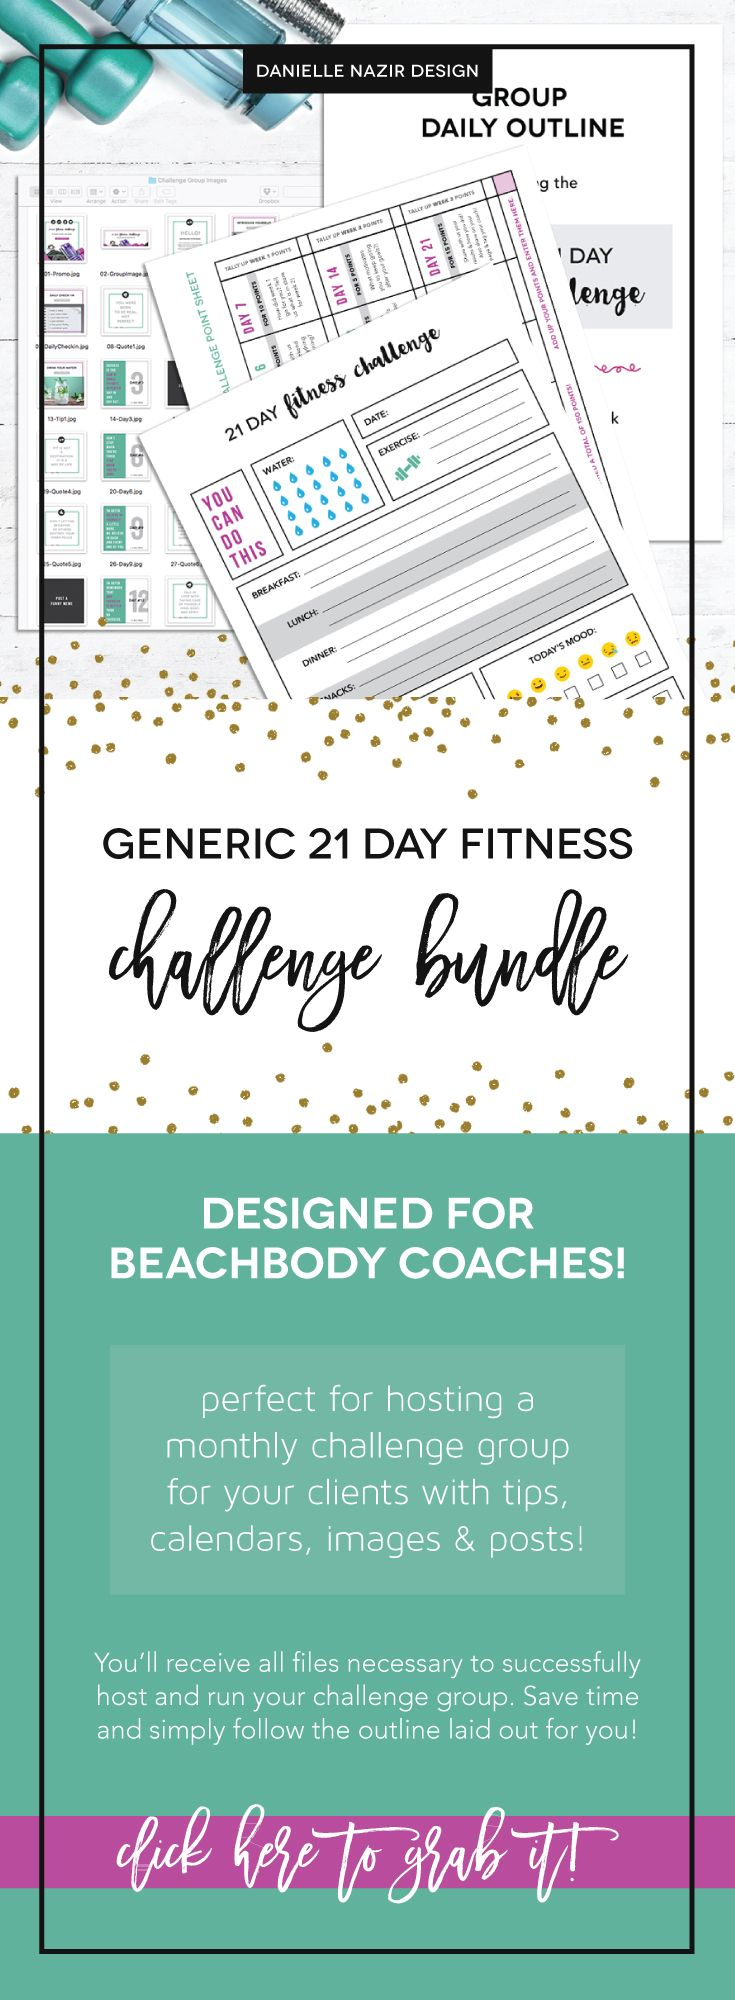 Coach Group Bundle : 21 Day Fitness Challenge // Are you a coach? Need a quick kit to host a generic or free 21 day fitness challenge? This will include a daily posting outline along with images, point sheet, tracking sheet and more to keep your challengers engaged and motivated to reach their goals!! // beachbody coach // fitness challenge // 21 day group // coach resource // 21 day challenge group // beachbody challenge group // coaching resource // coach bundle kit // workout challenge…